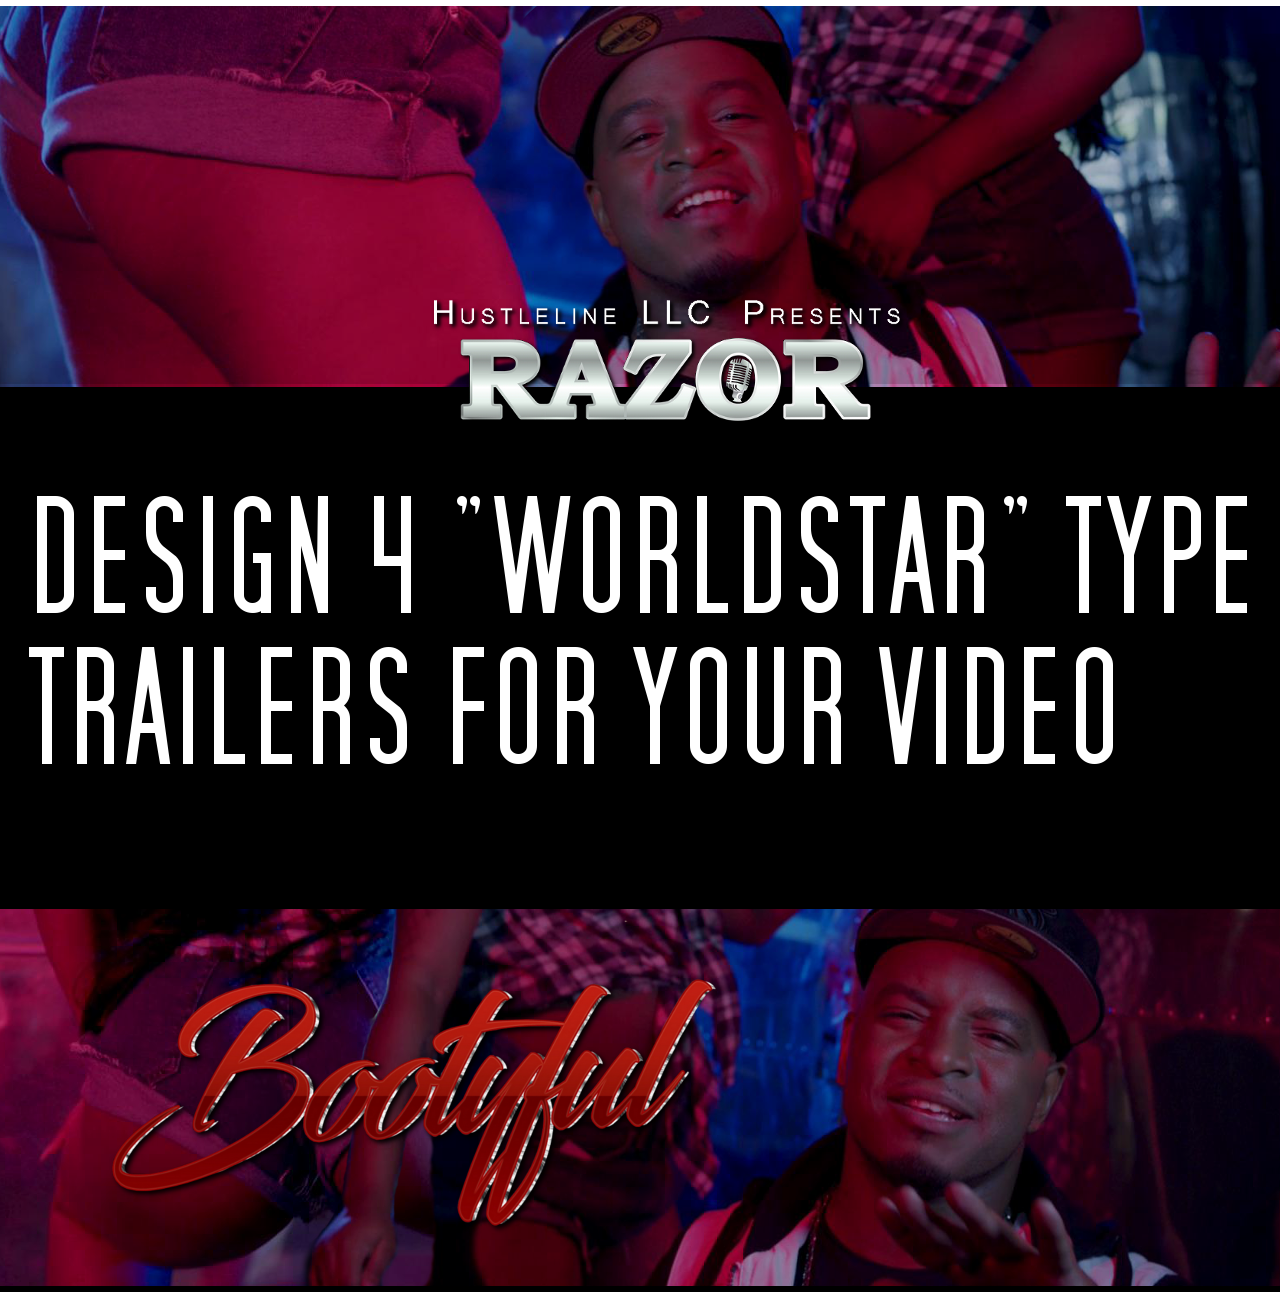 Design 4 'WorldStar type' Trailers For Your Video